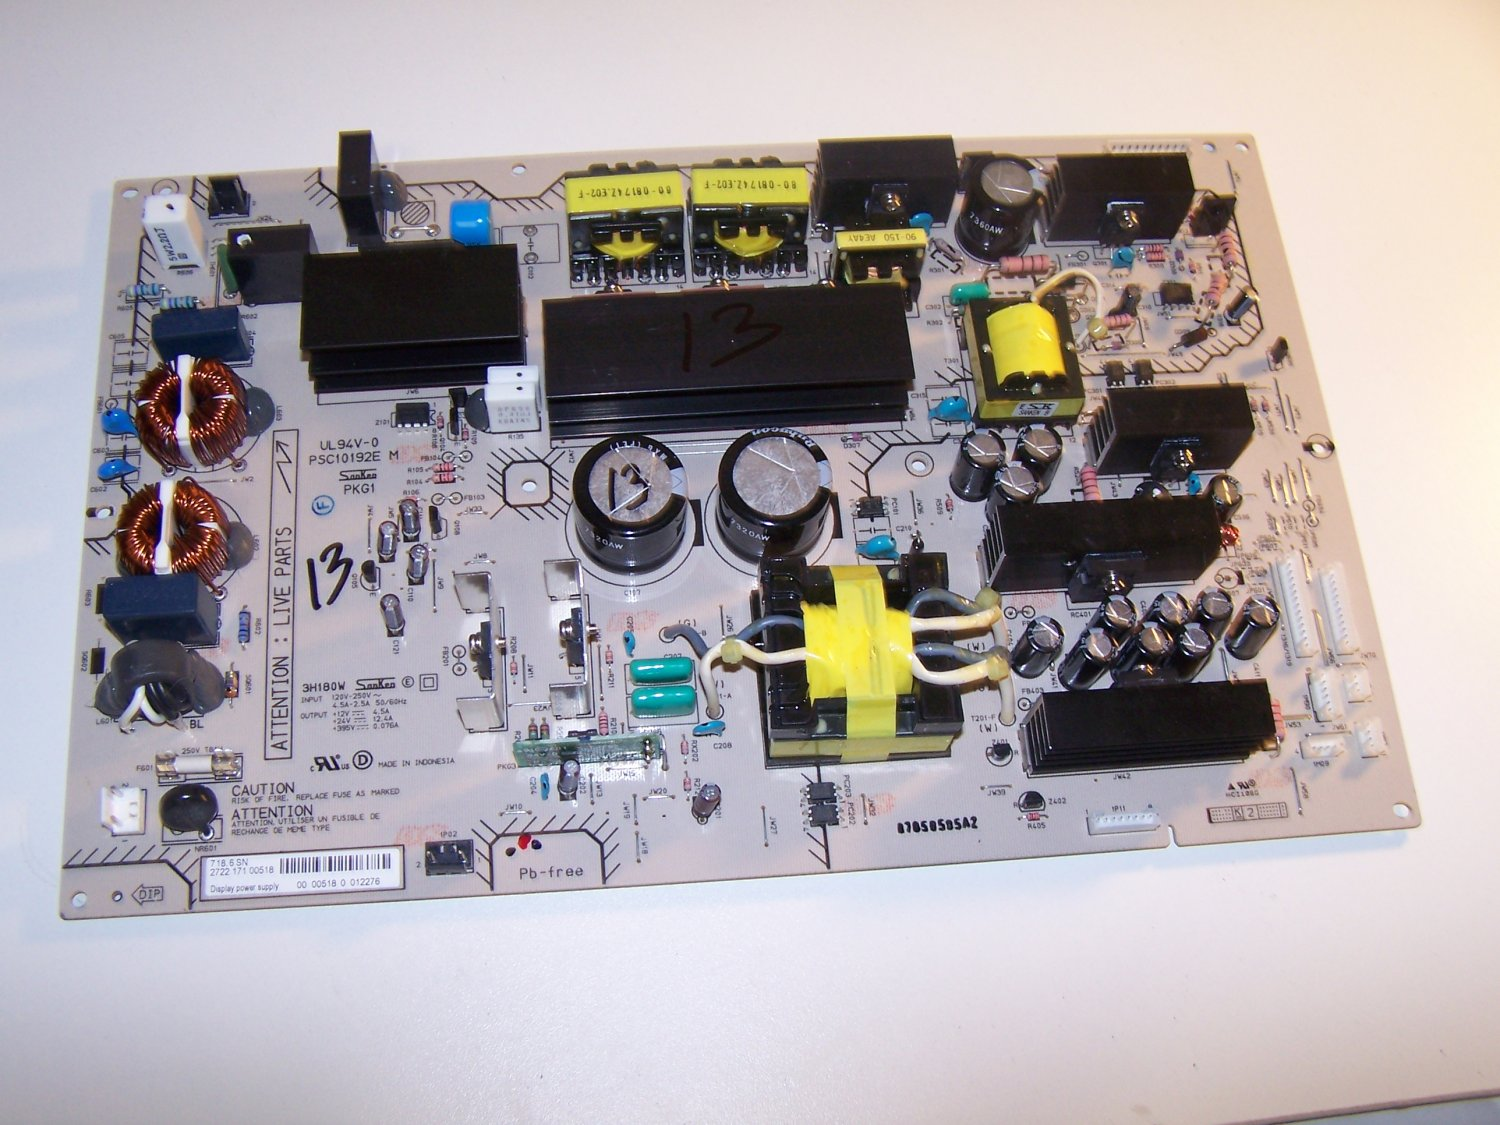 PSC10192J M Power Supply Board Main for PHILIPS 47PFL7422D